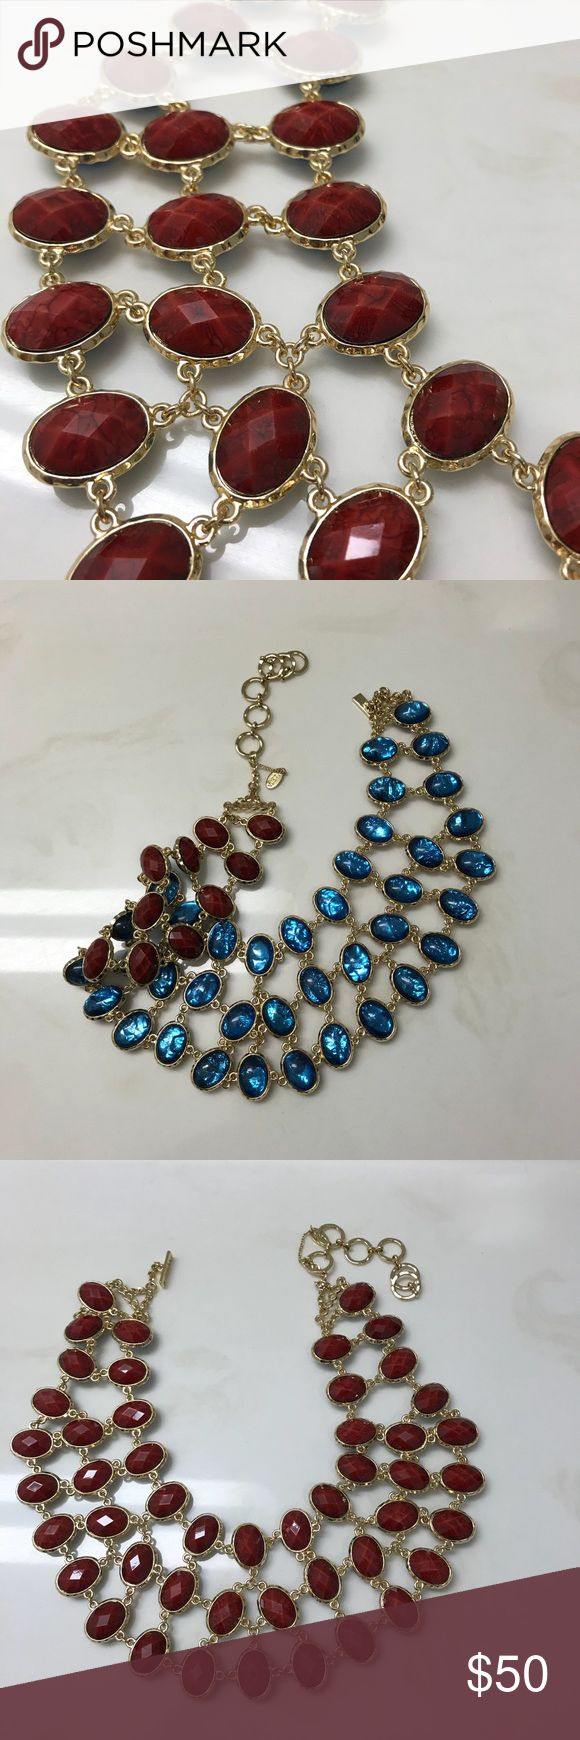 Amrita Singh Hampton Reversible Bib Necklace This never been worn reversible necklace is such a statement piece. One side has ruby stones while the other has crystal blue stones. Amrita Singh Jewelry Necklaces